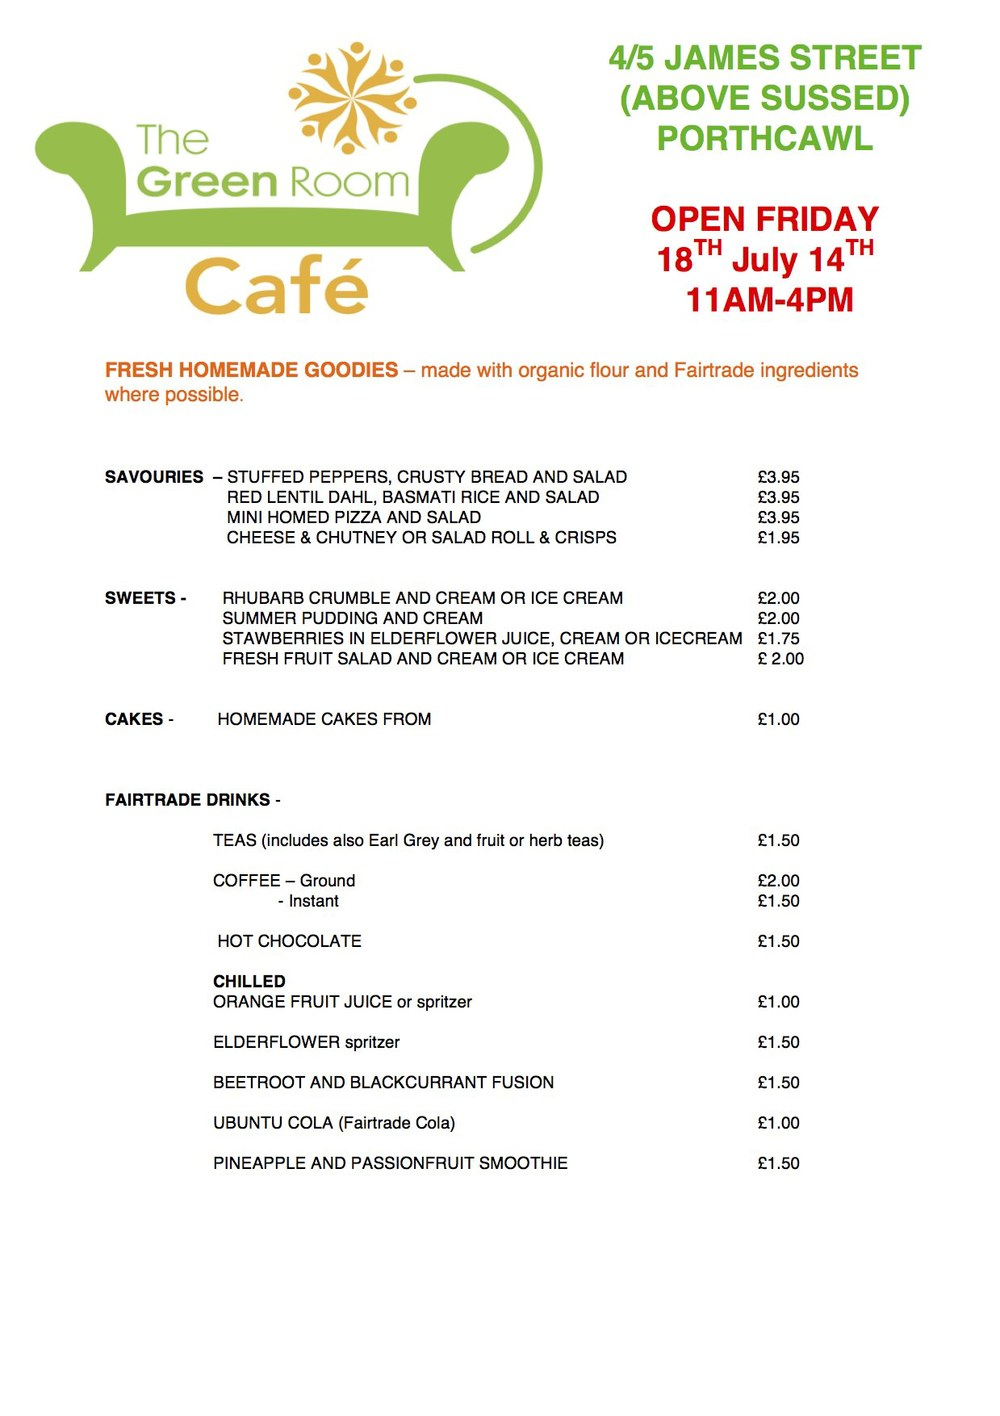 Green Room Café Menu 18 July 2014